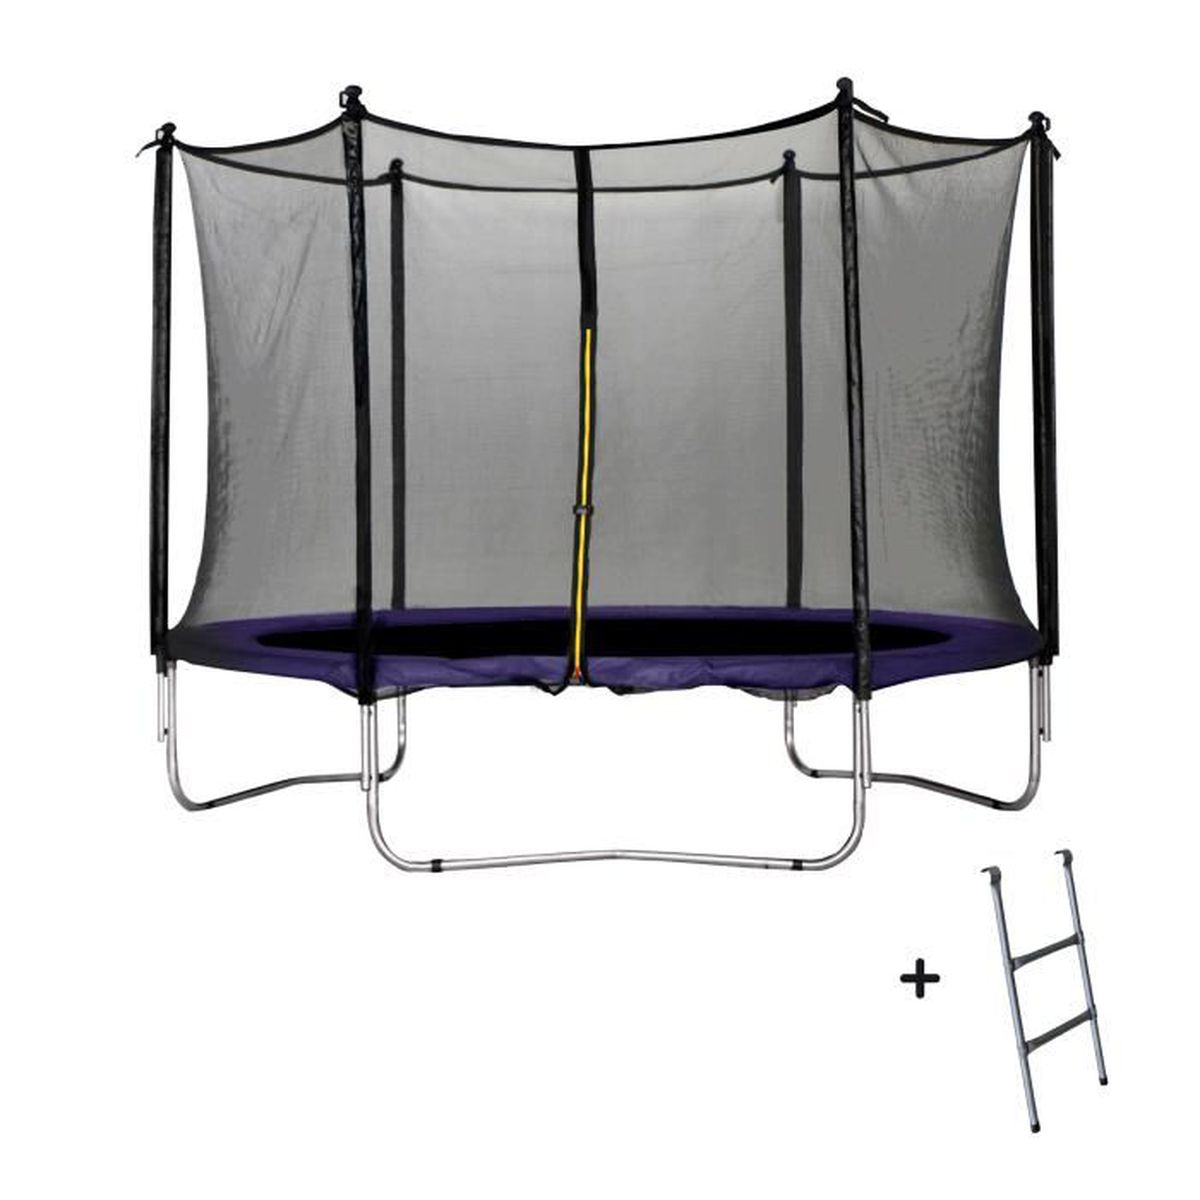 trampoline violet 305 cm achat vente trampoline cdiscount. Black Bedroom Furniture Sets. Home Design Ideas